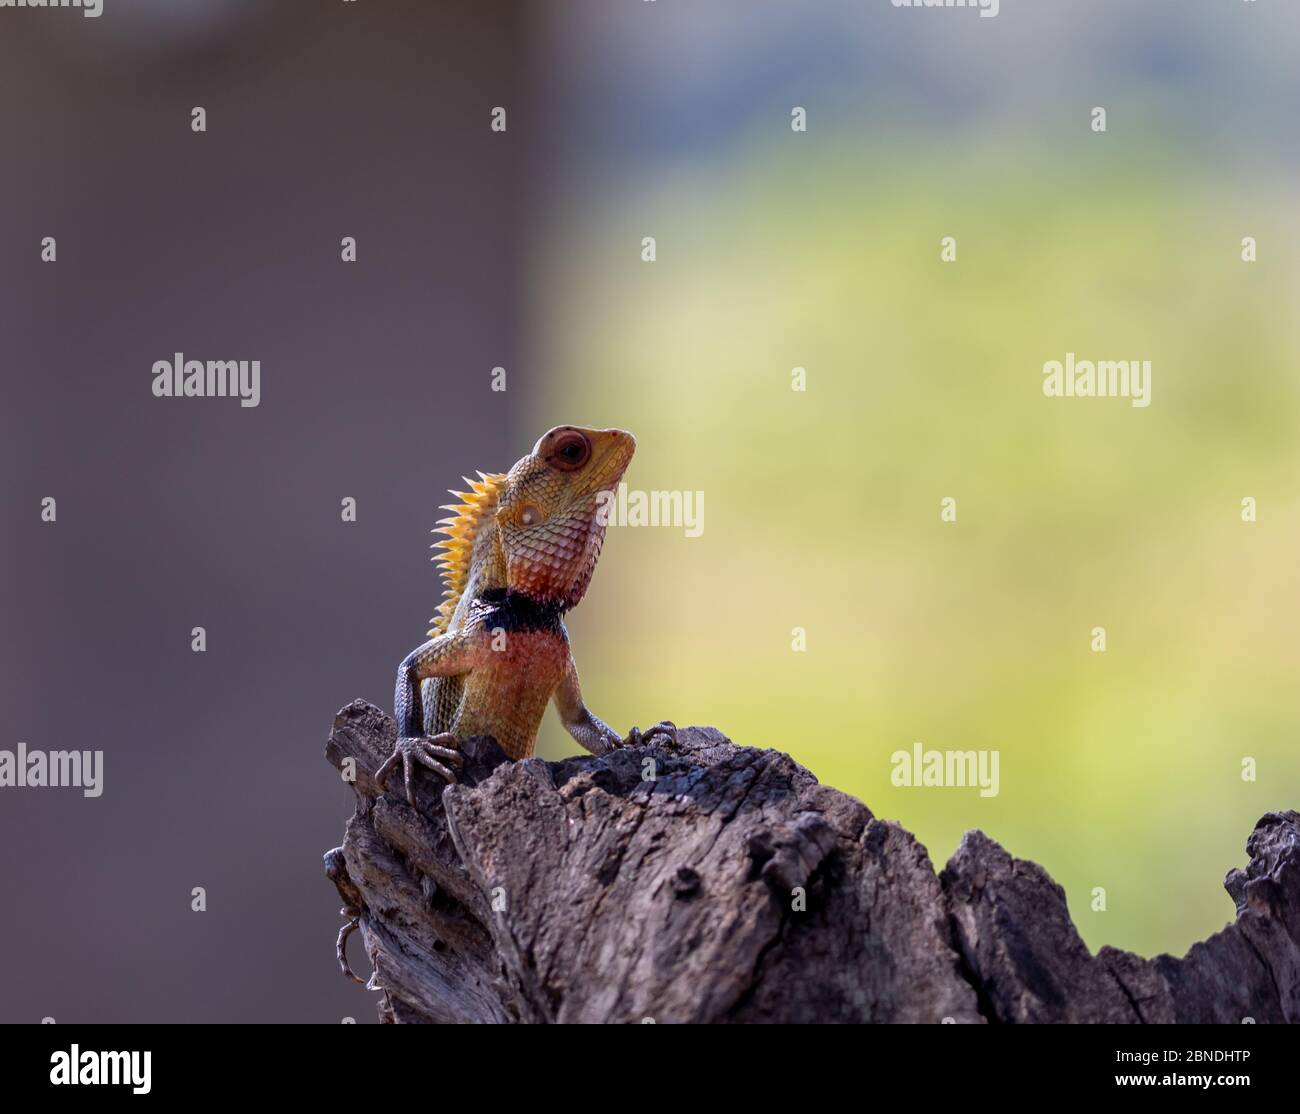 Alert colorful orange and blue crested iguana in profile with head raised against a blurred outdoor background with copy space Stock Photo